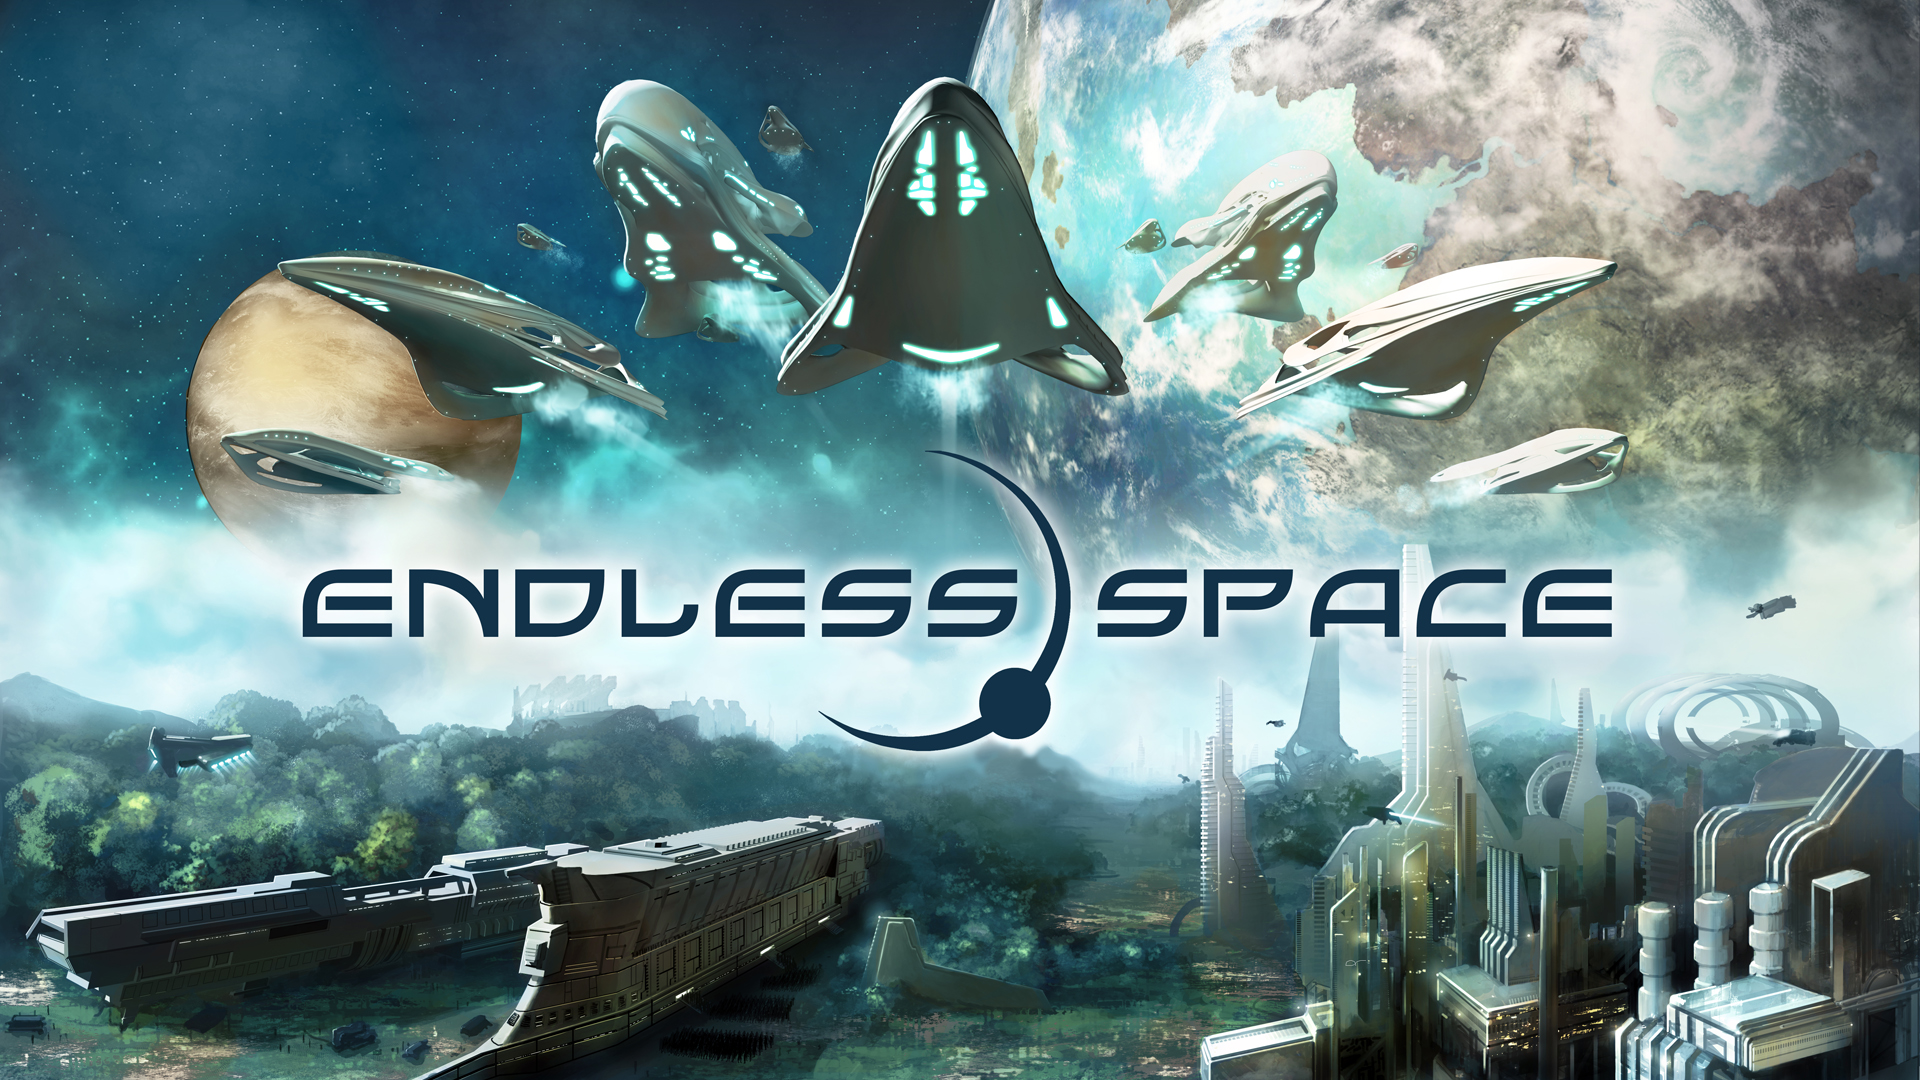 [PC] Endless Space - Disharmony (2013) ENG/TED/FRA